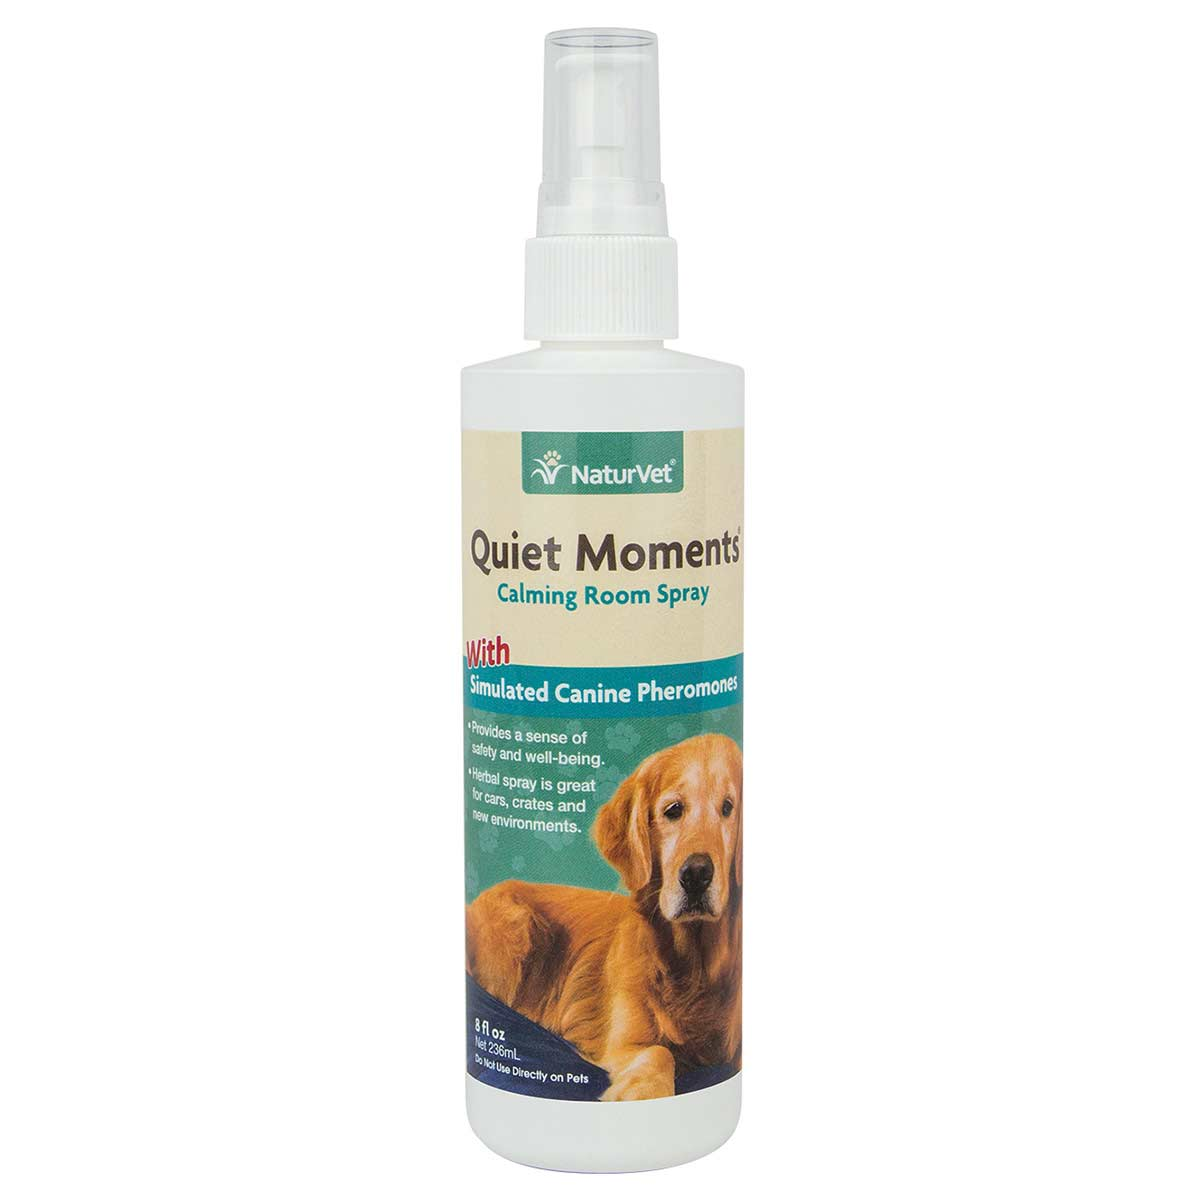 NaturVet Quiet Moments Calming Room Spray For Dogs 8 oz